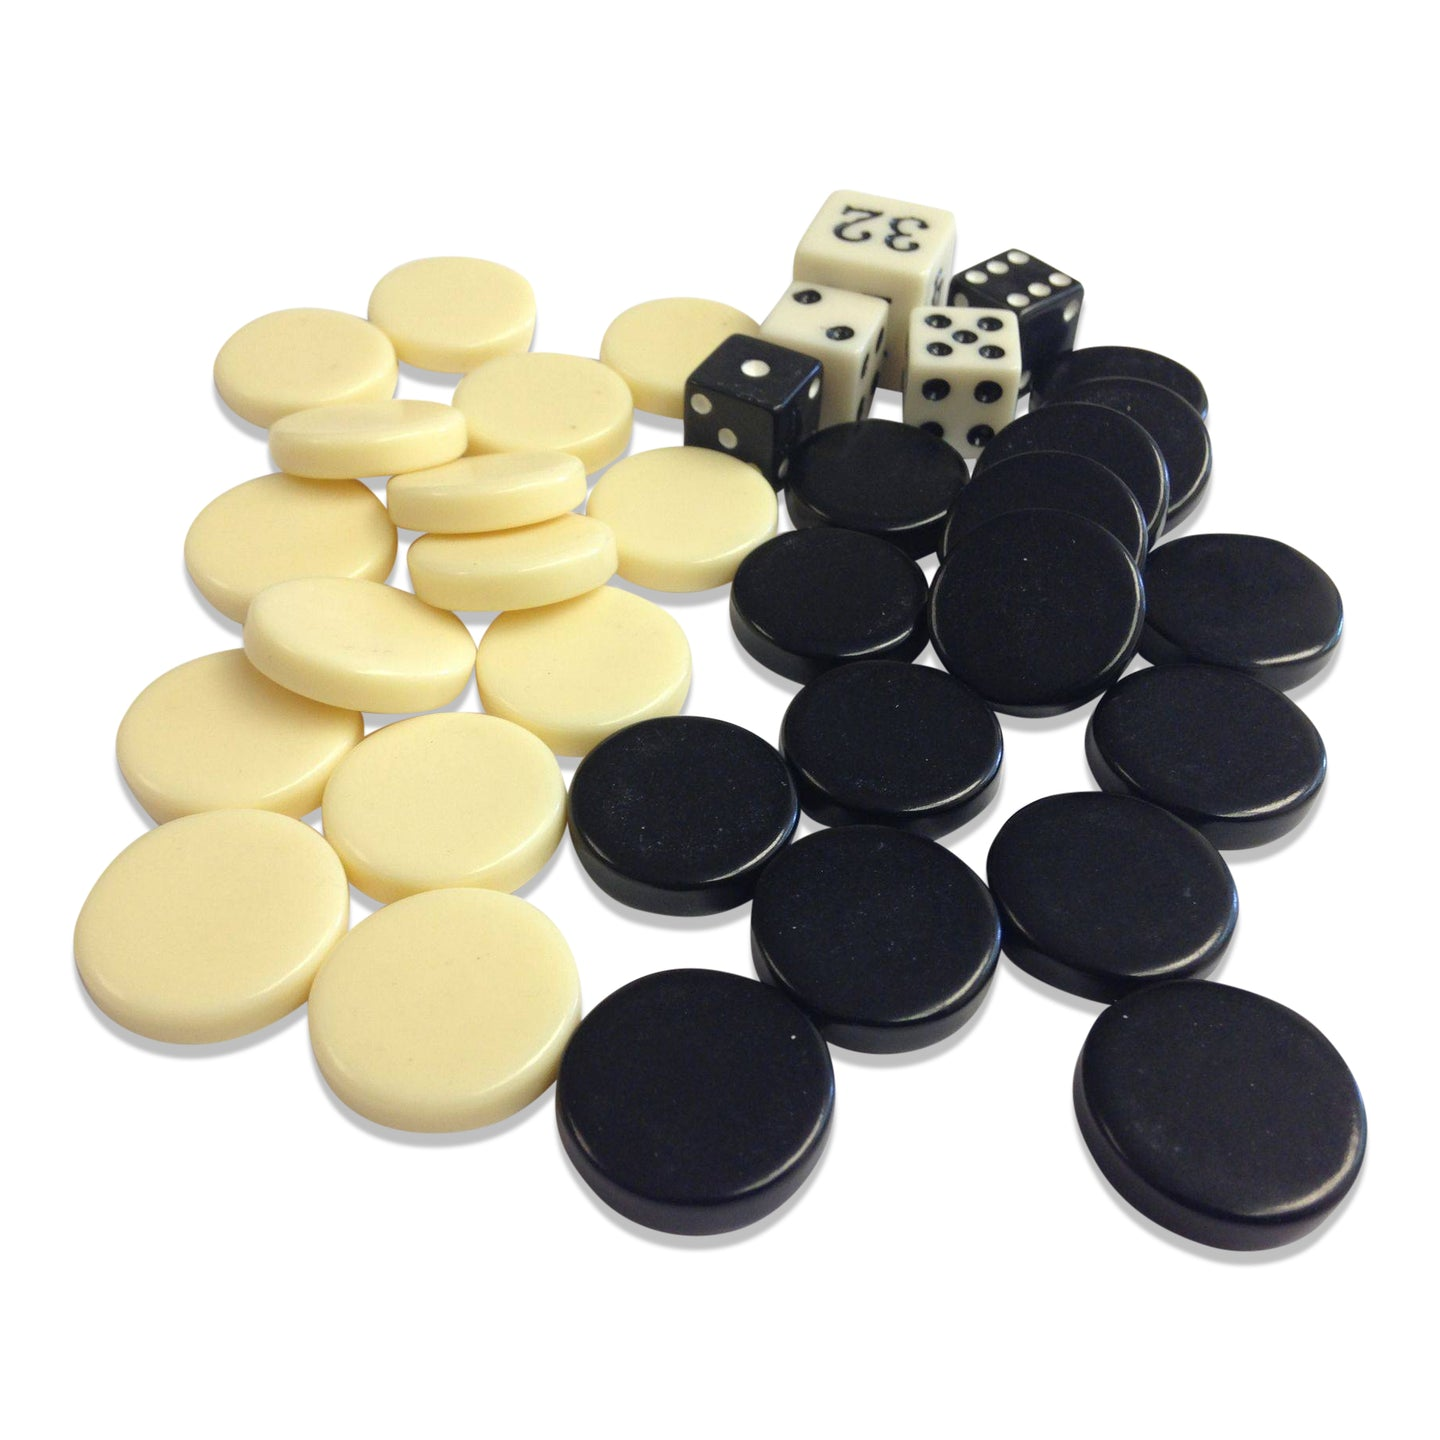 Replacement Pieces: Backgammon